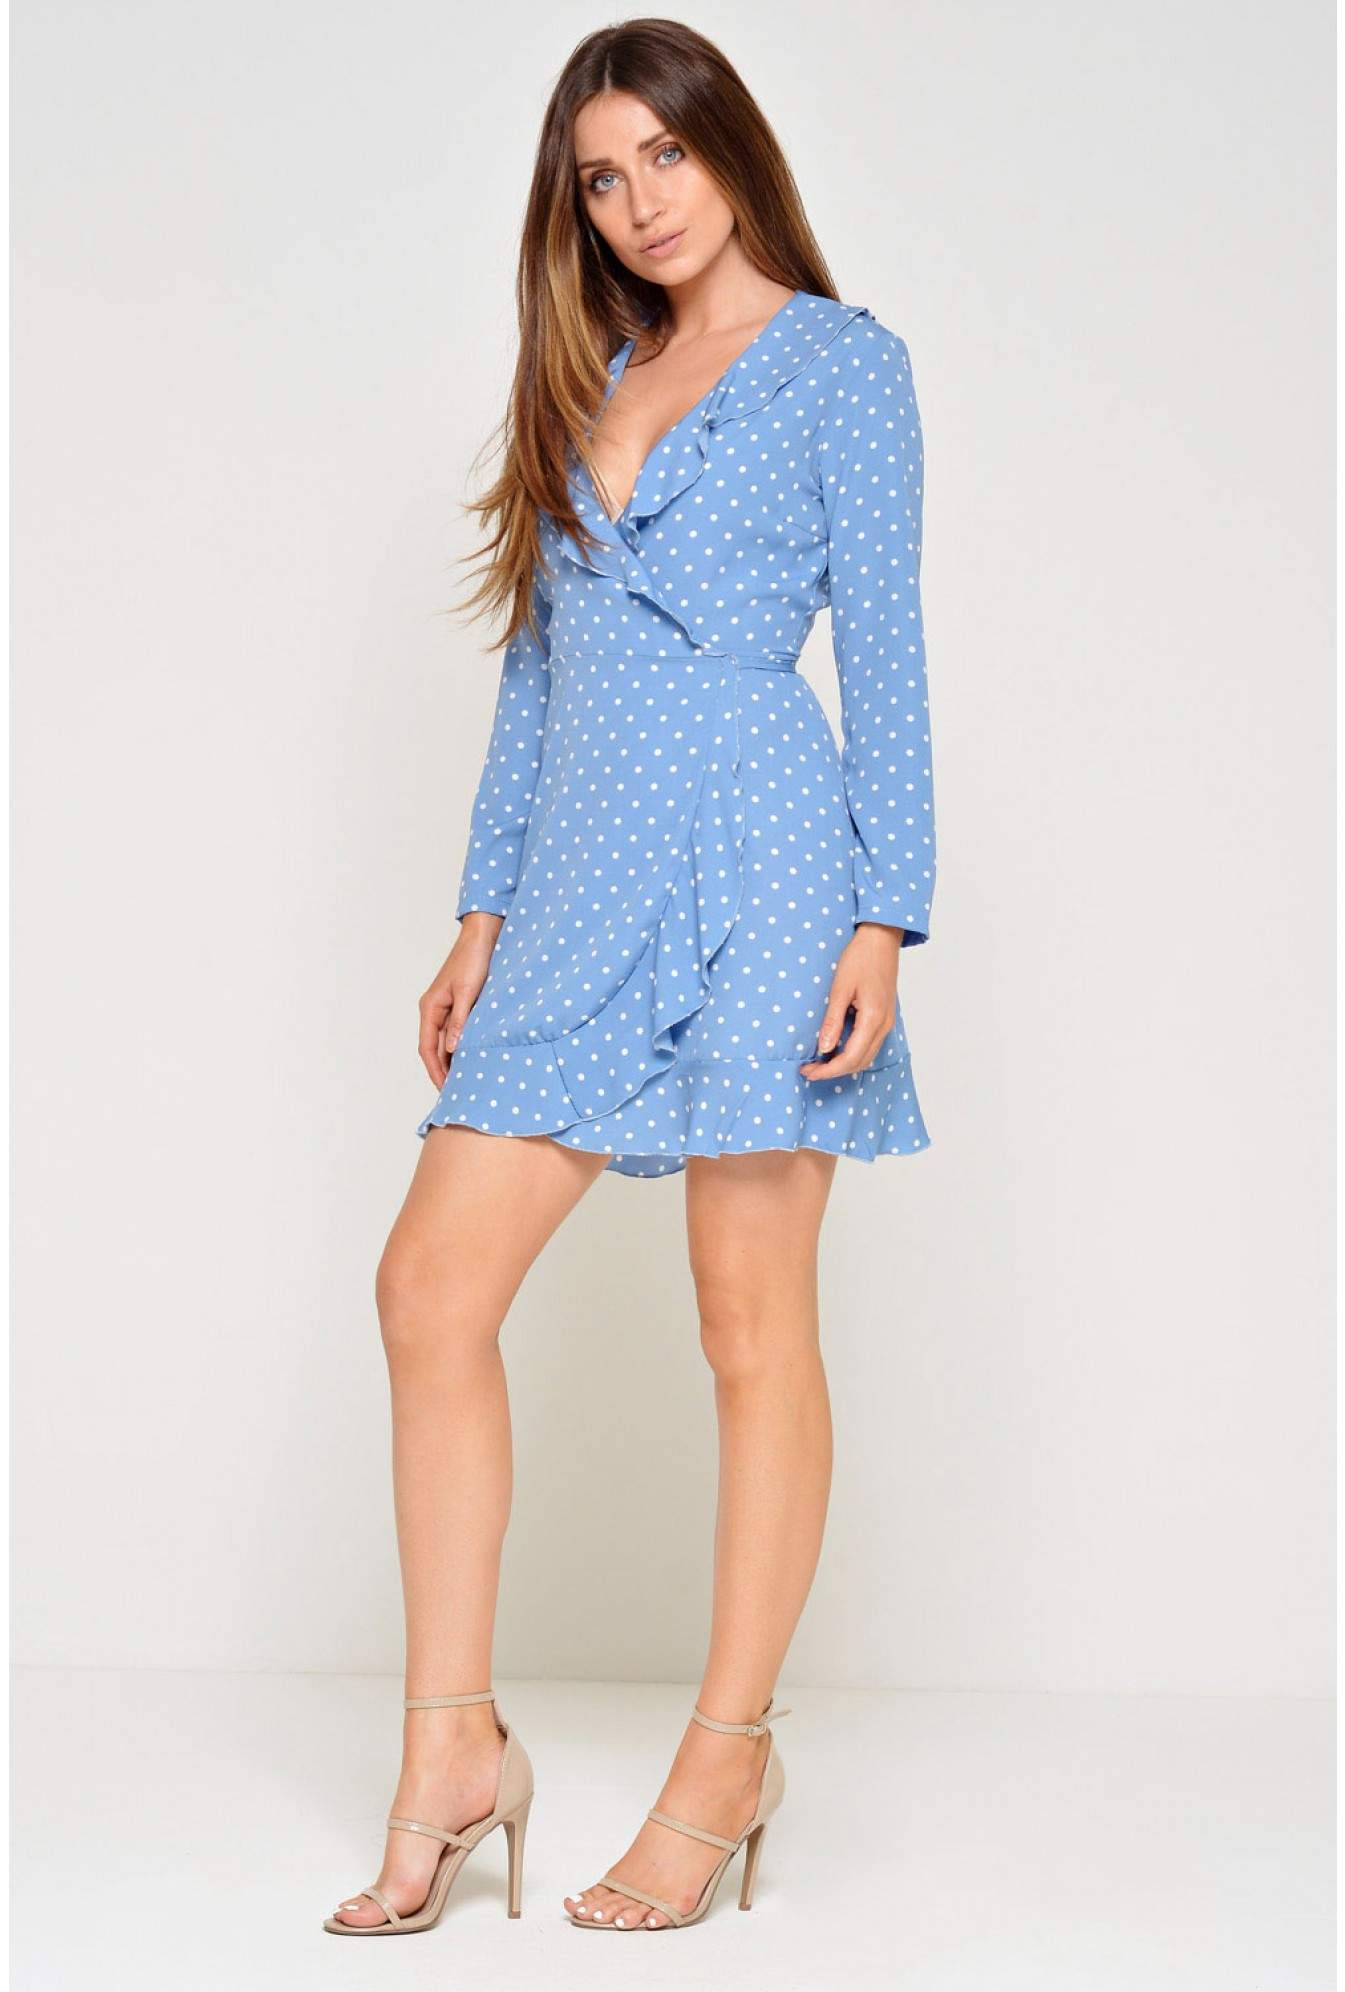 8d78abeda3 More Views. Kate Frill Wrap Dress in Blue Polka Dot